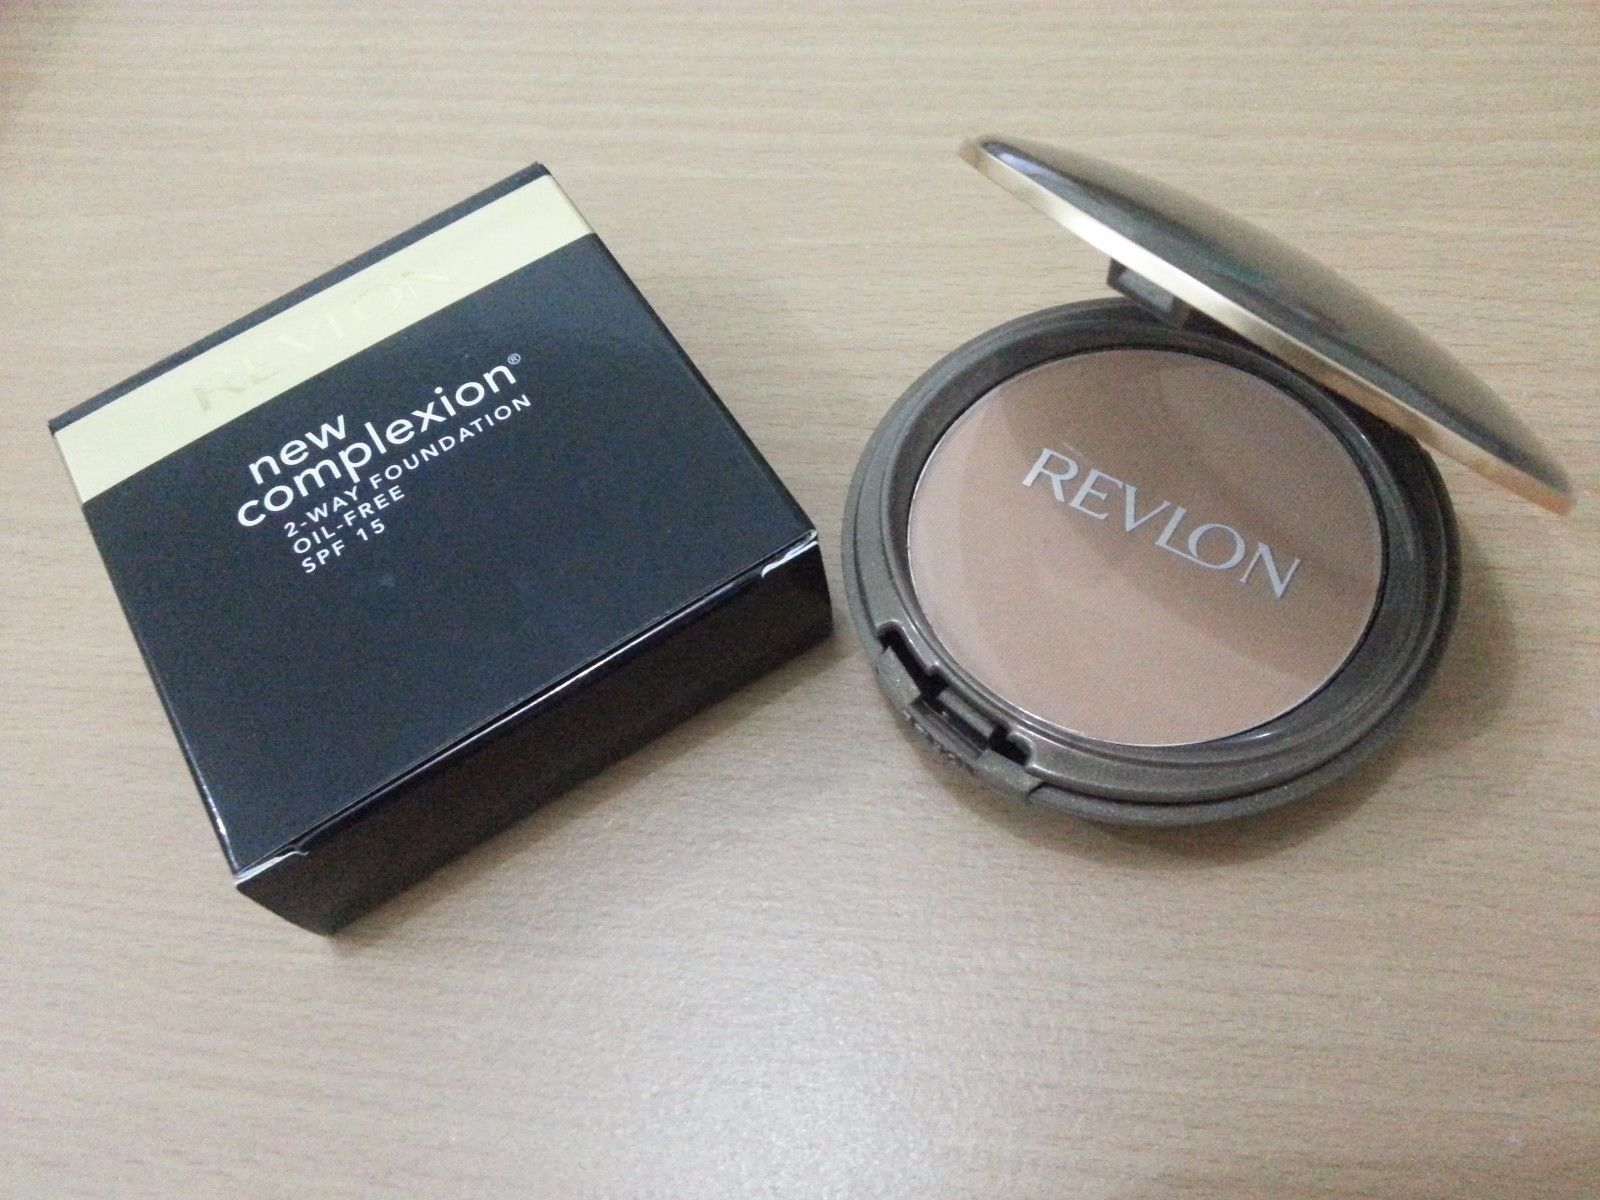 Revlon makeup new complexion 2 way face foundation compact powder honey beige1 .